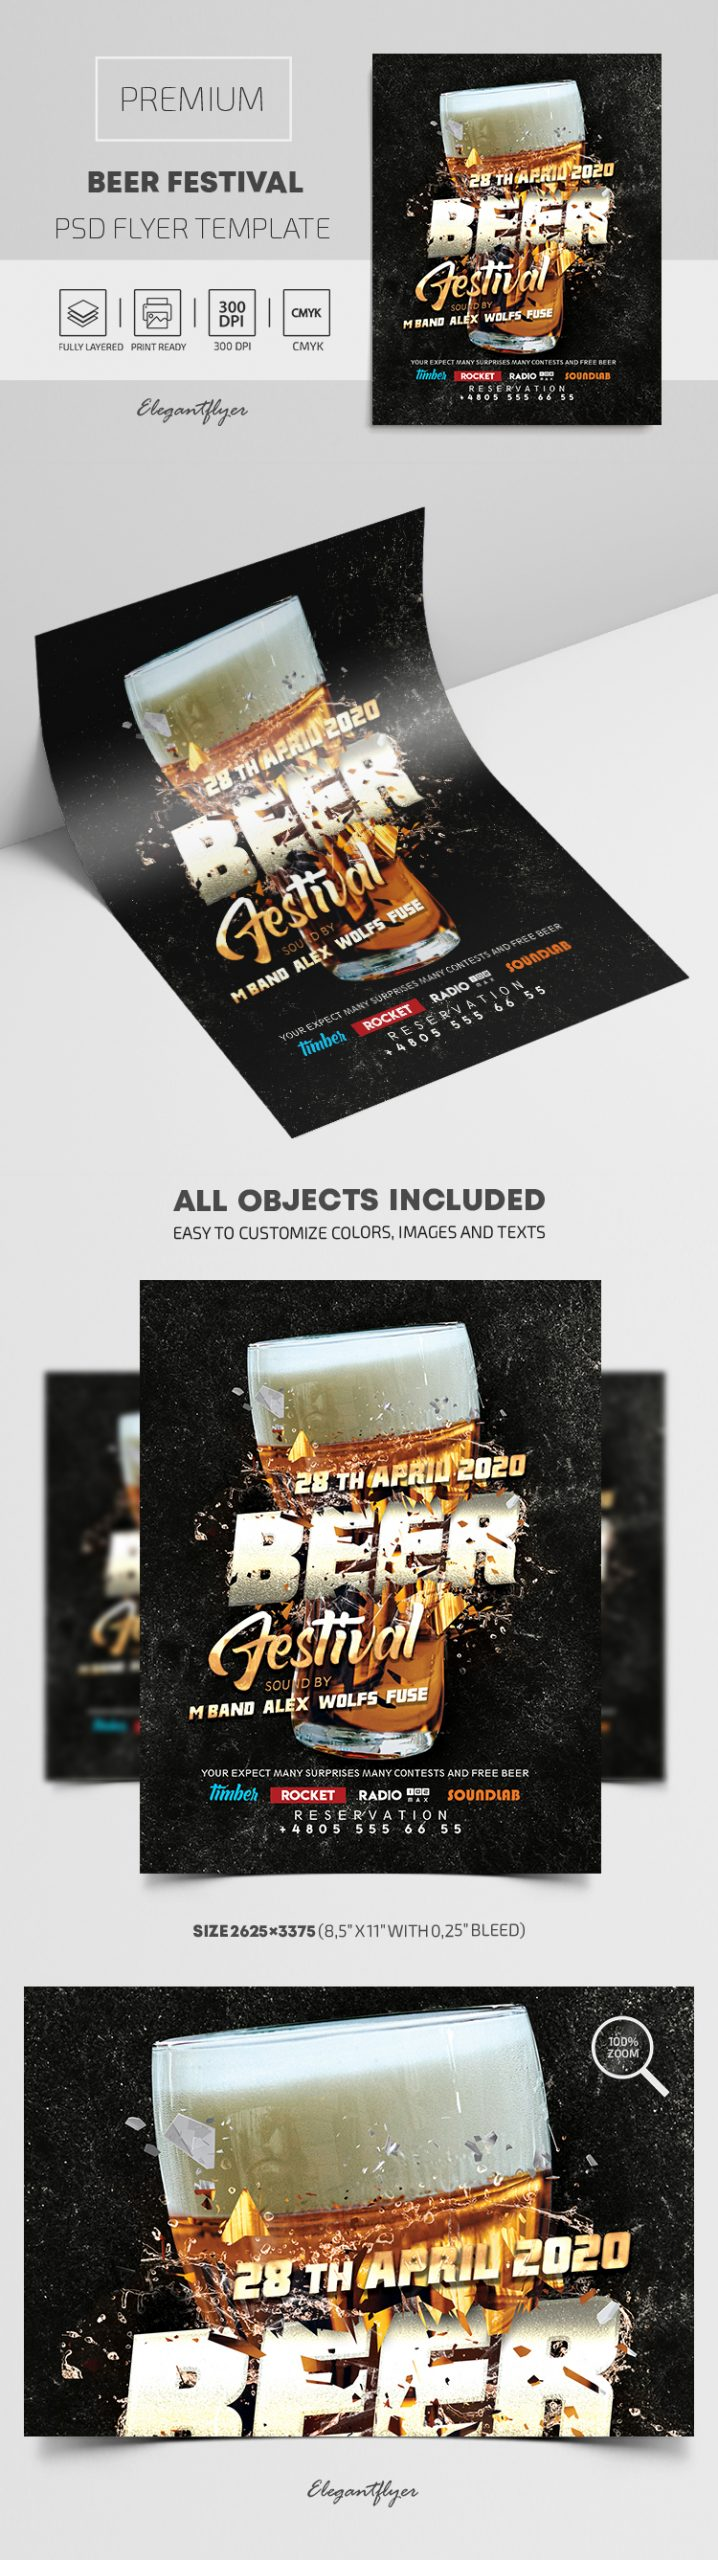 Beer Festival – Premium PSD Flyer Template